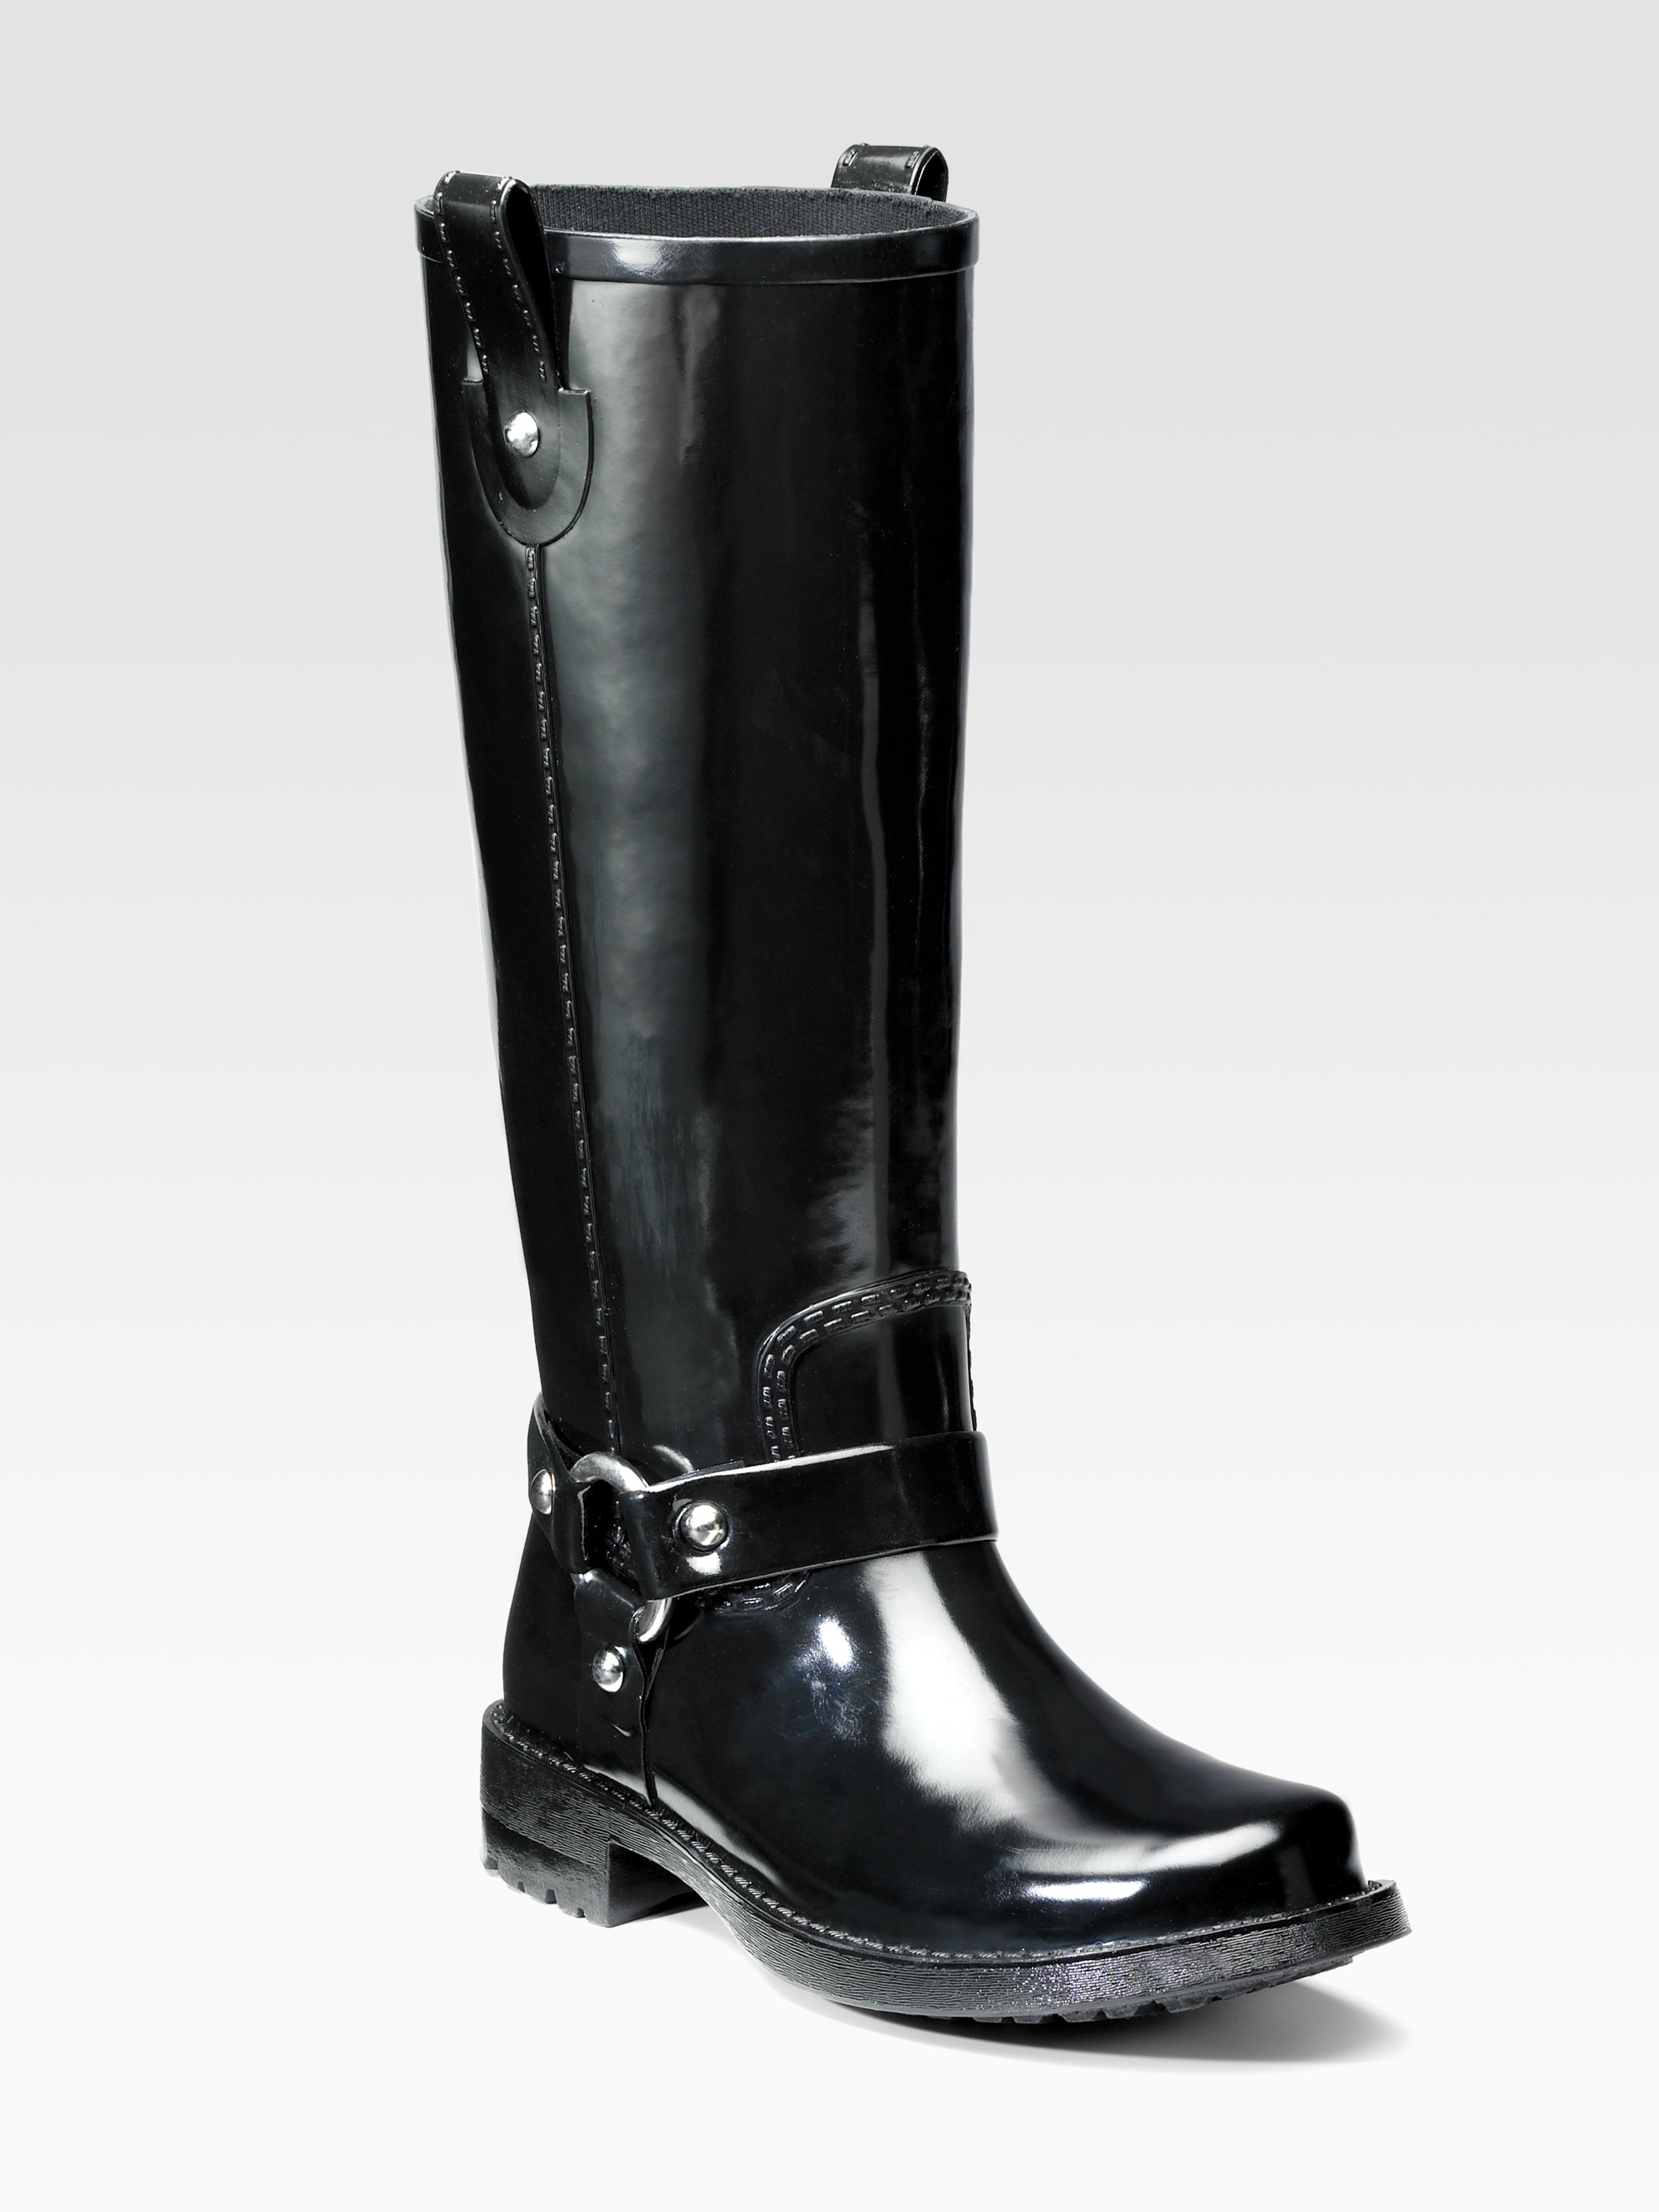 Kors By Michael Kors Stormy Moto Rubber Rain Boots In